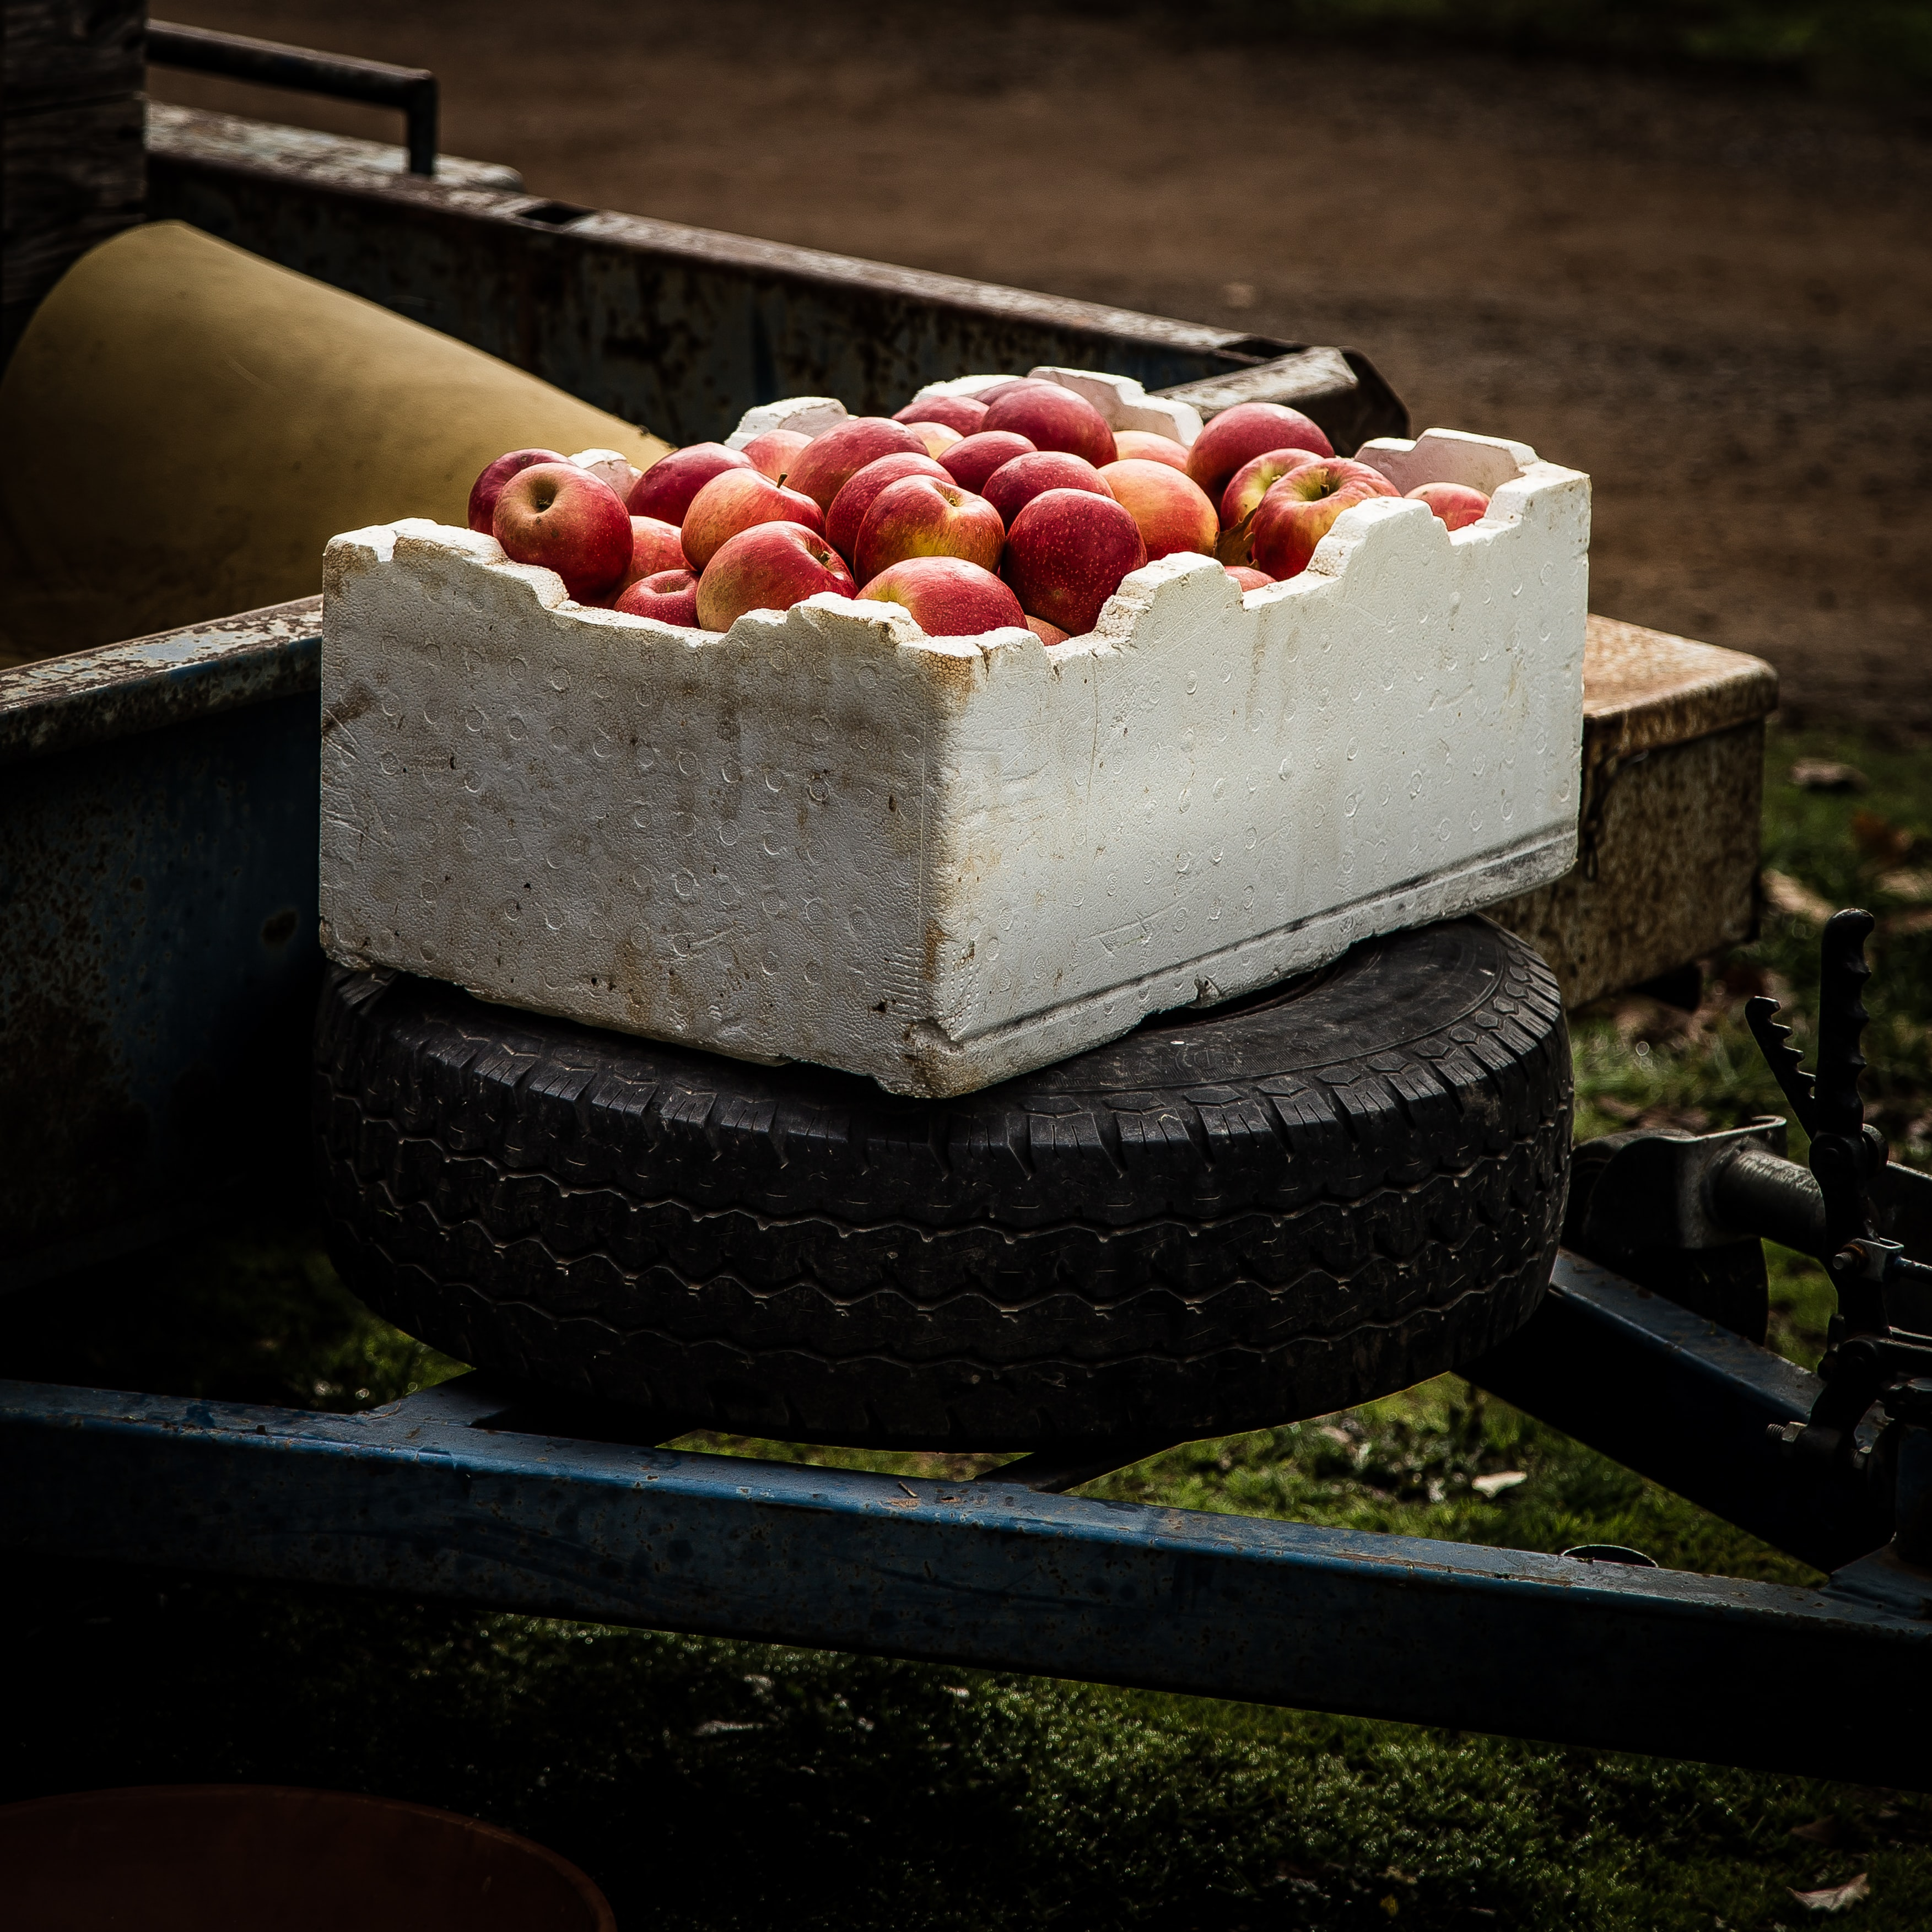 lot of apples in white styro crate